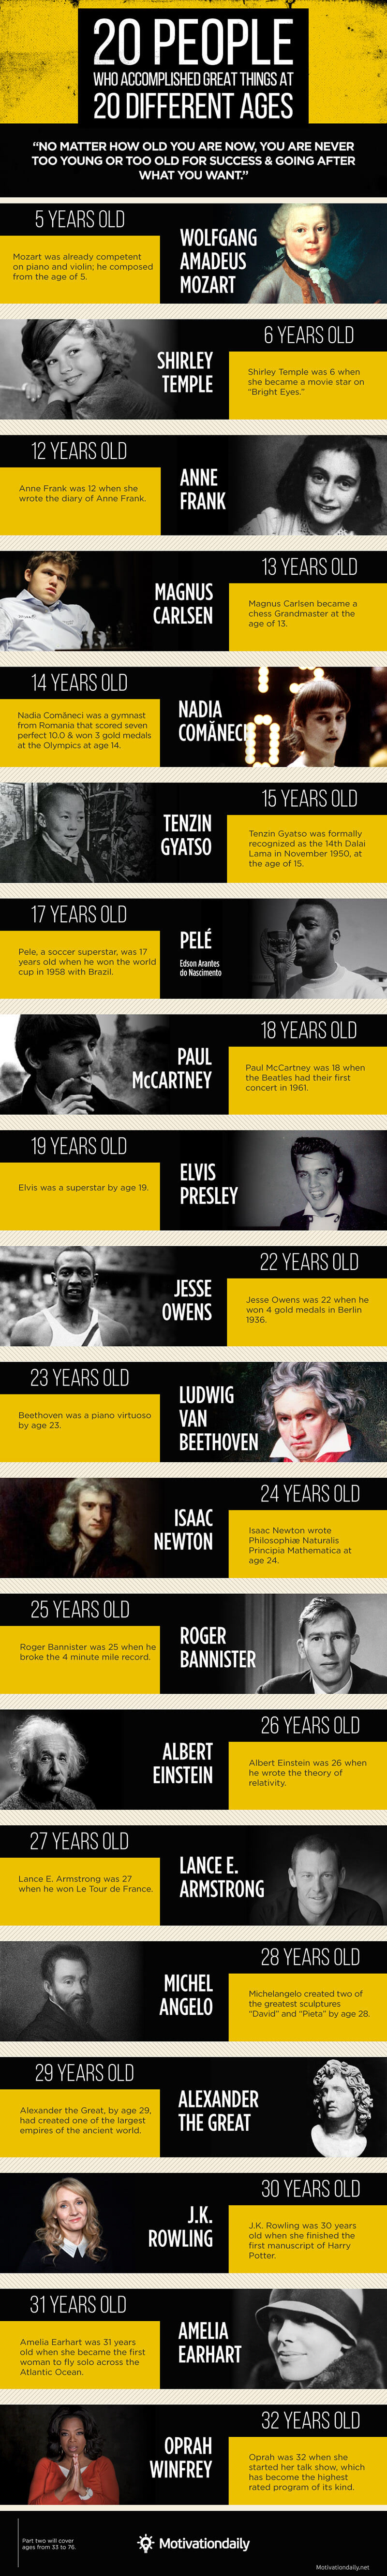 20 People Who Accomplished Great Things At Different Ages